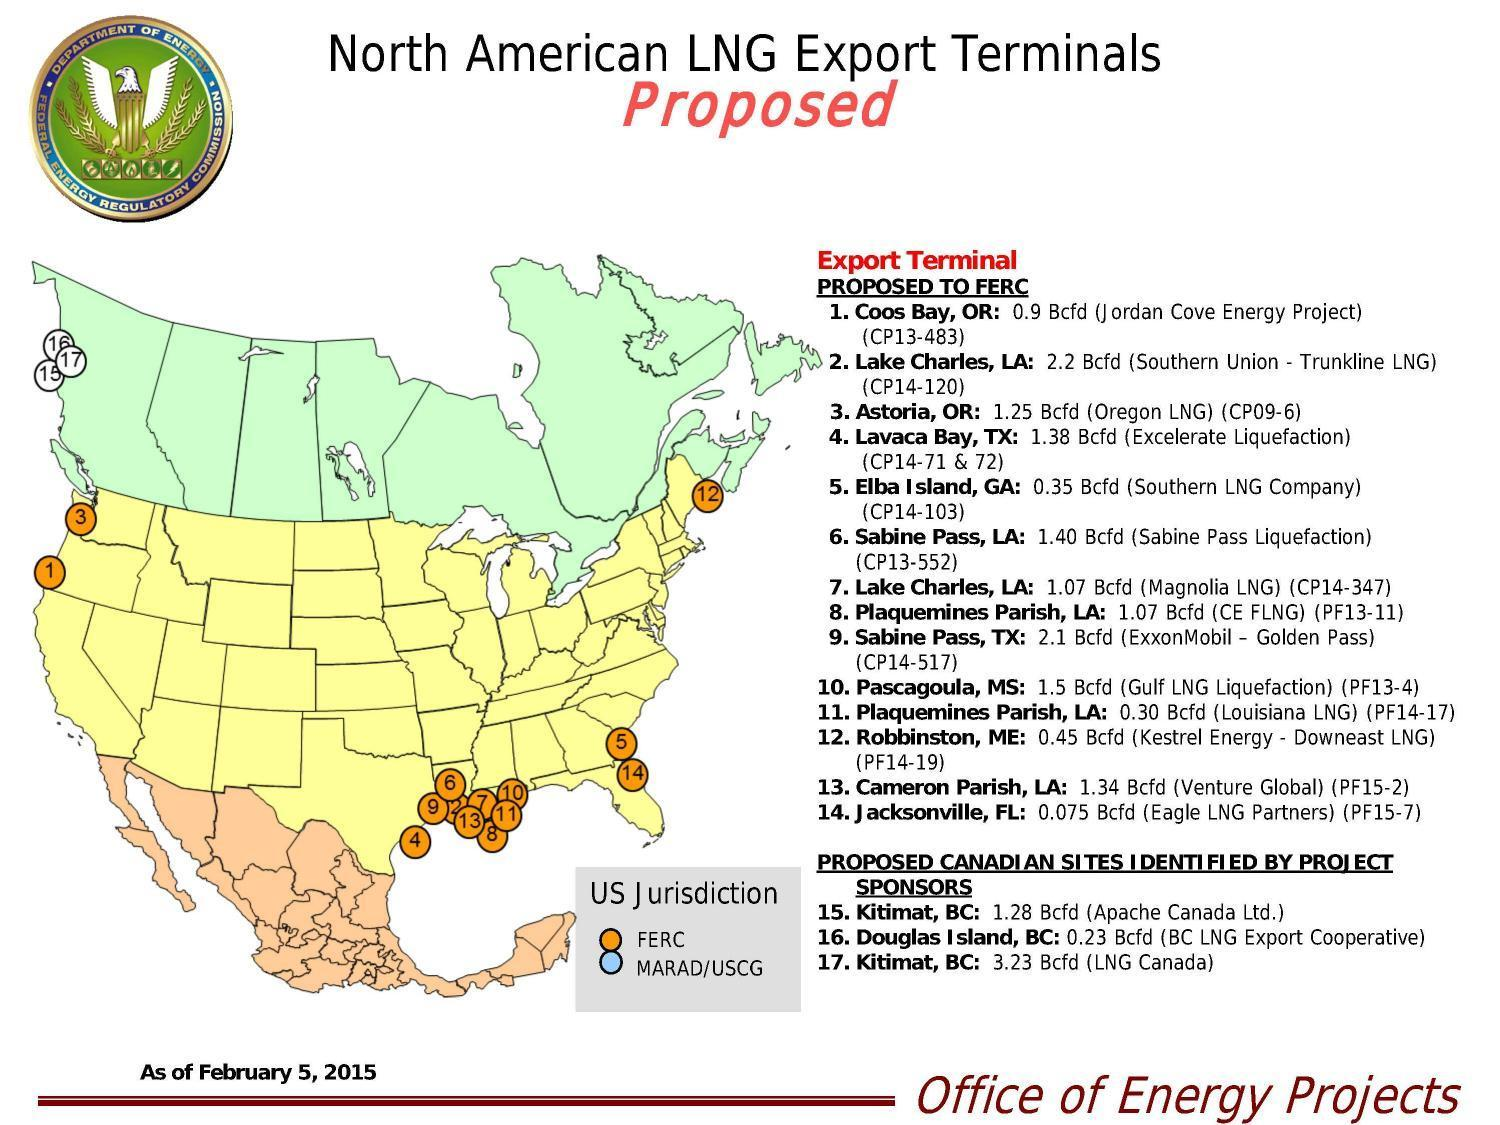 1500x1125 FERC Proposed LNG Export, in LNG, by John S. Quarterman, for SpectraBusters.org, 22 February 2015